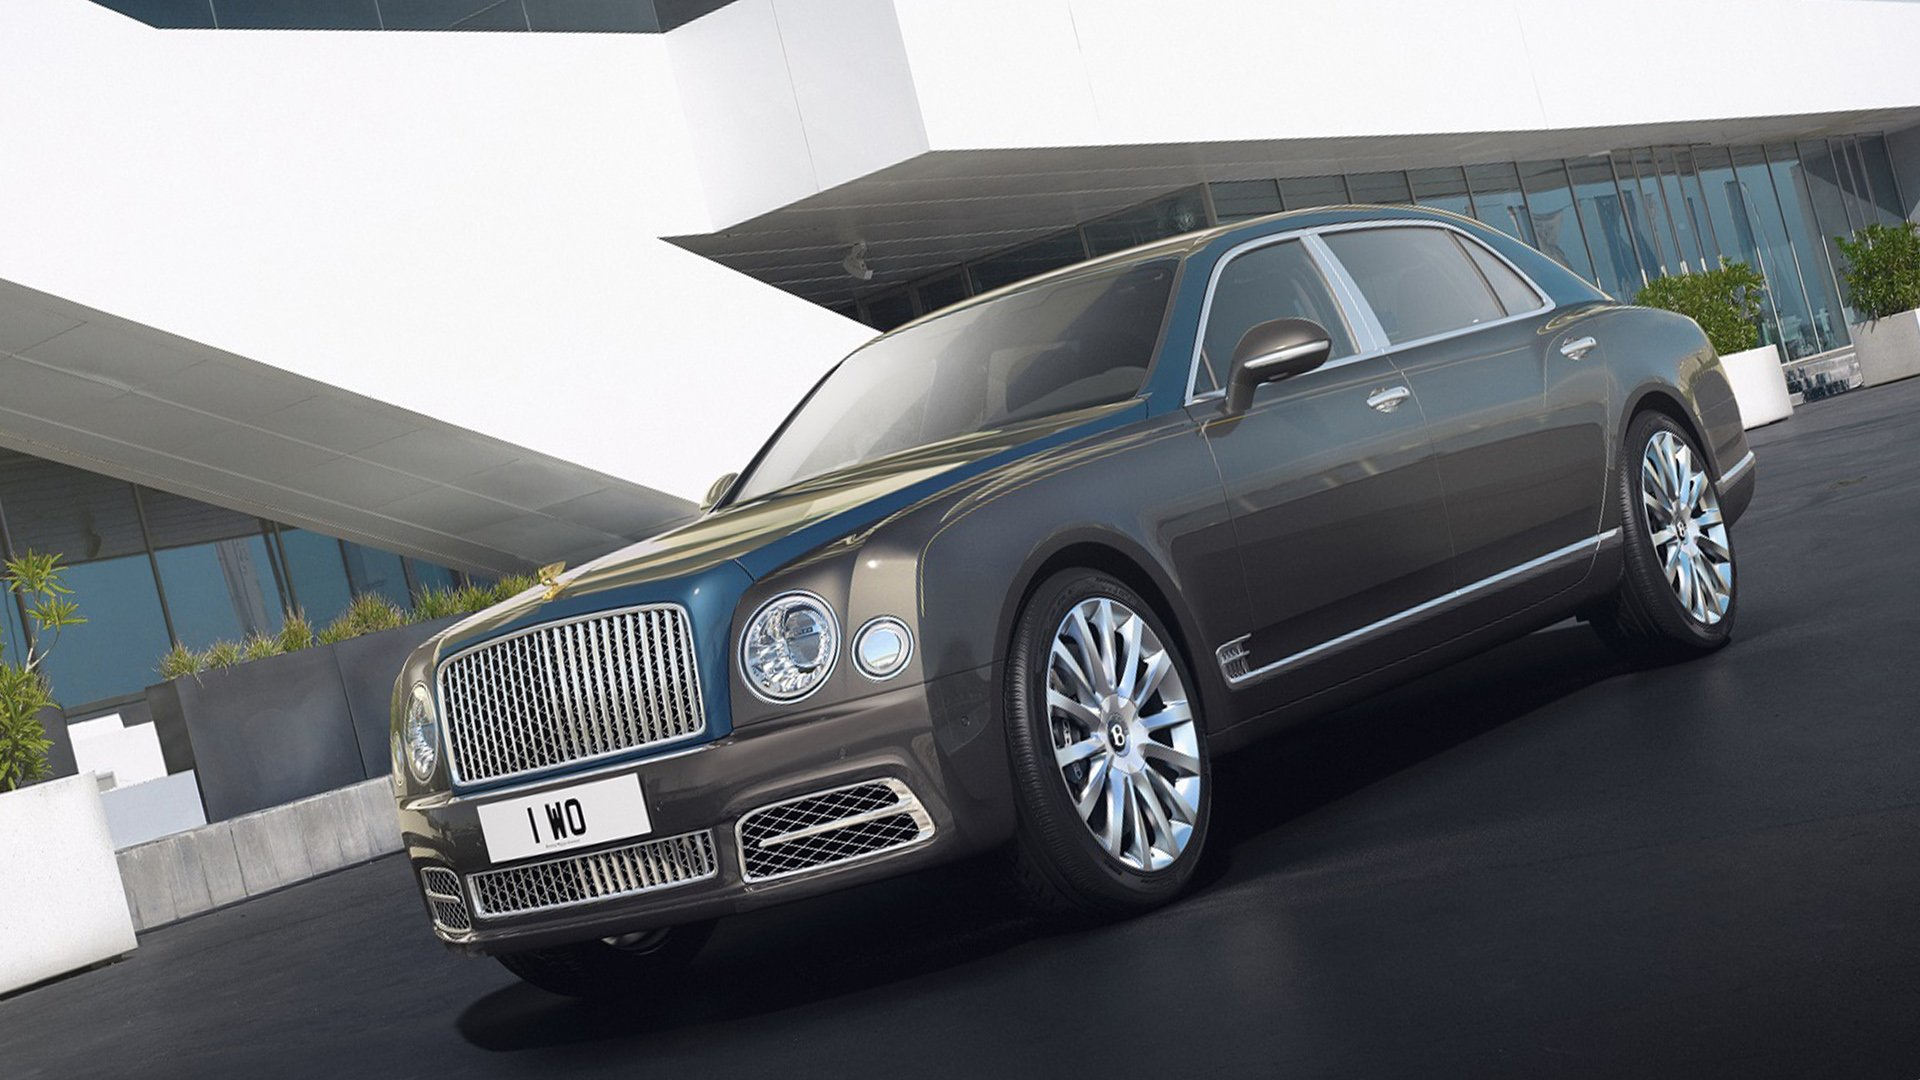 New 2019 Bentley Mulsanne Specs Features